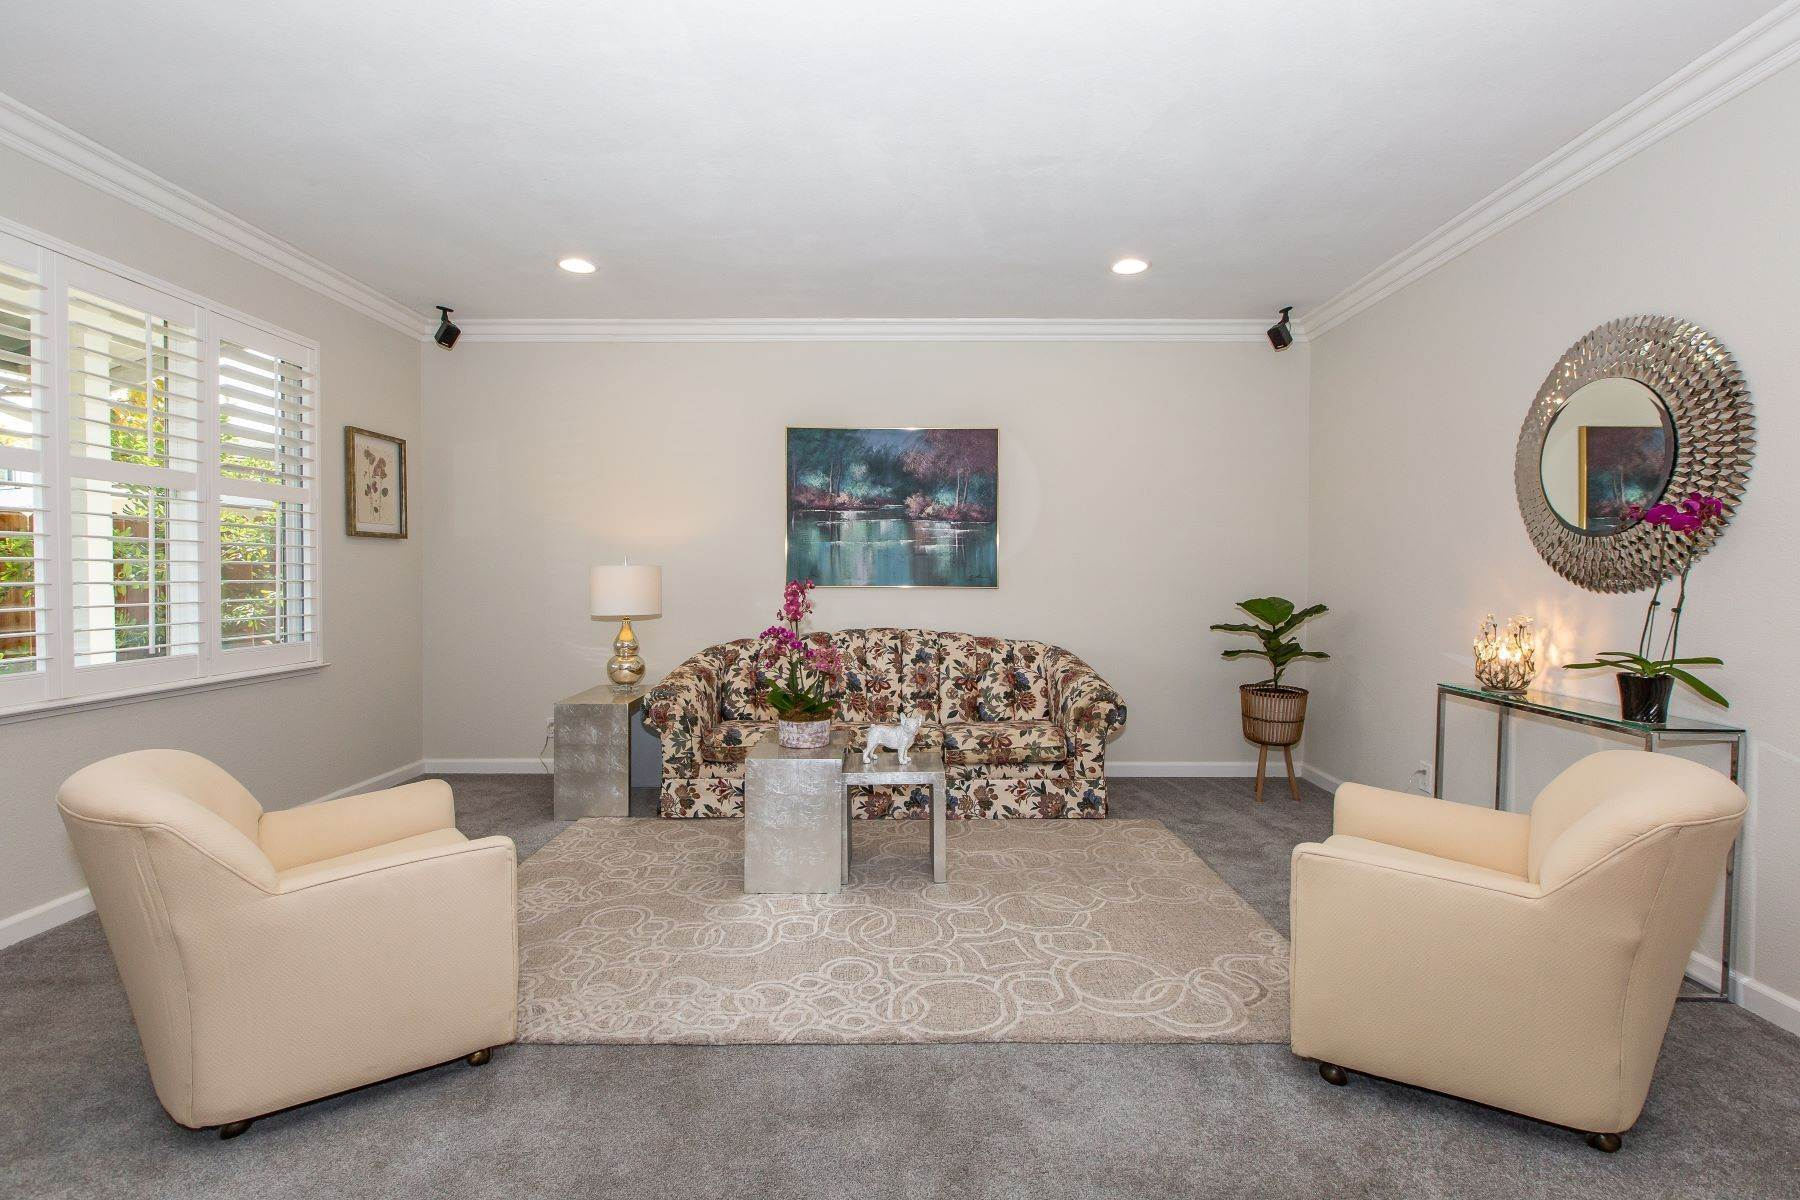 3. Single Family Homes for Sale at Bountiful 781 Berkshire Place 781 Berkshire Place Concord, California 94518 United States